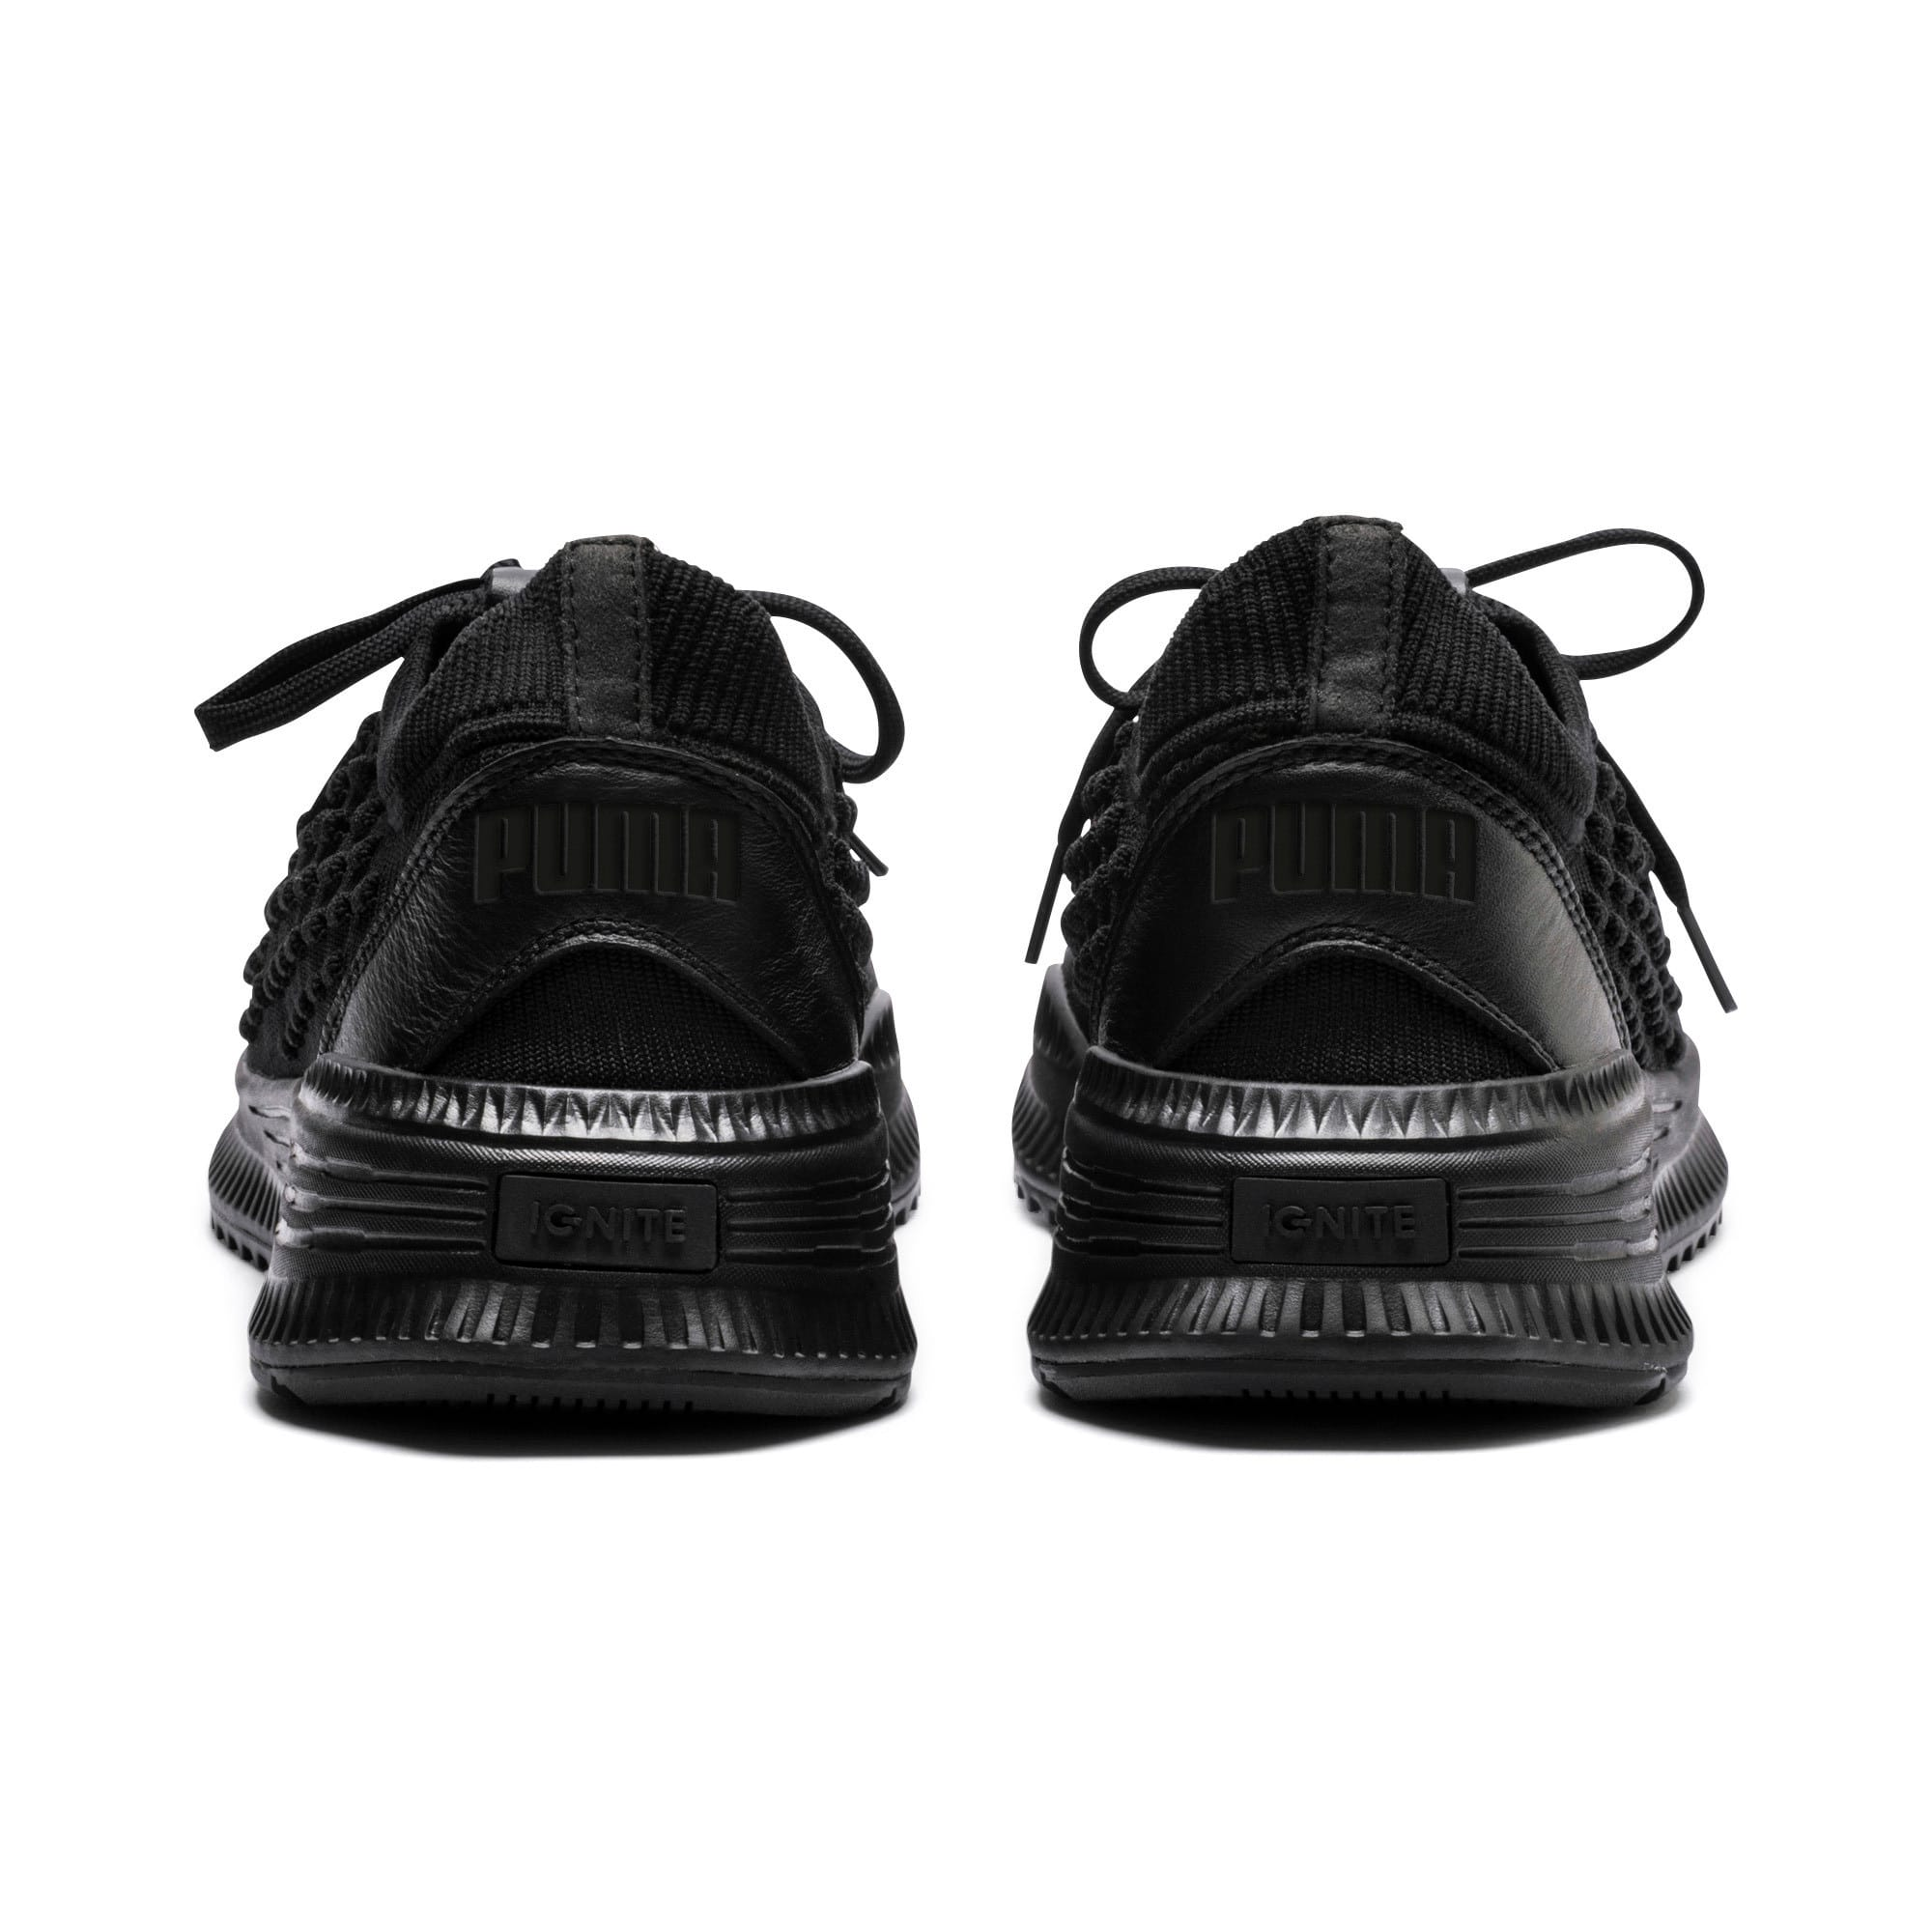 Thumbnail 4 of Evolution AVID FUSEFIT Sneakers, Puma Black-Puma Black-Black, medium